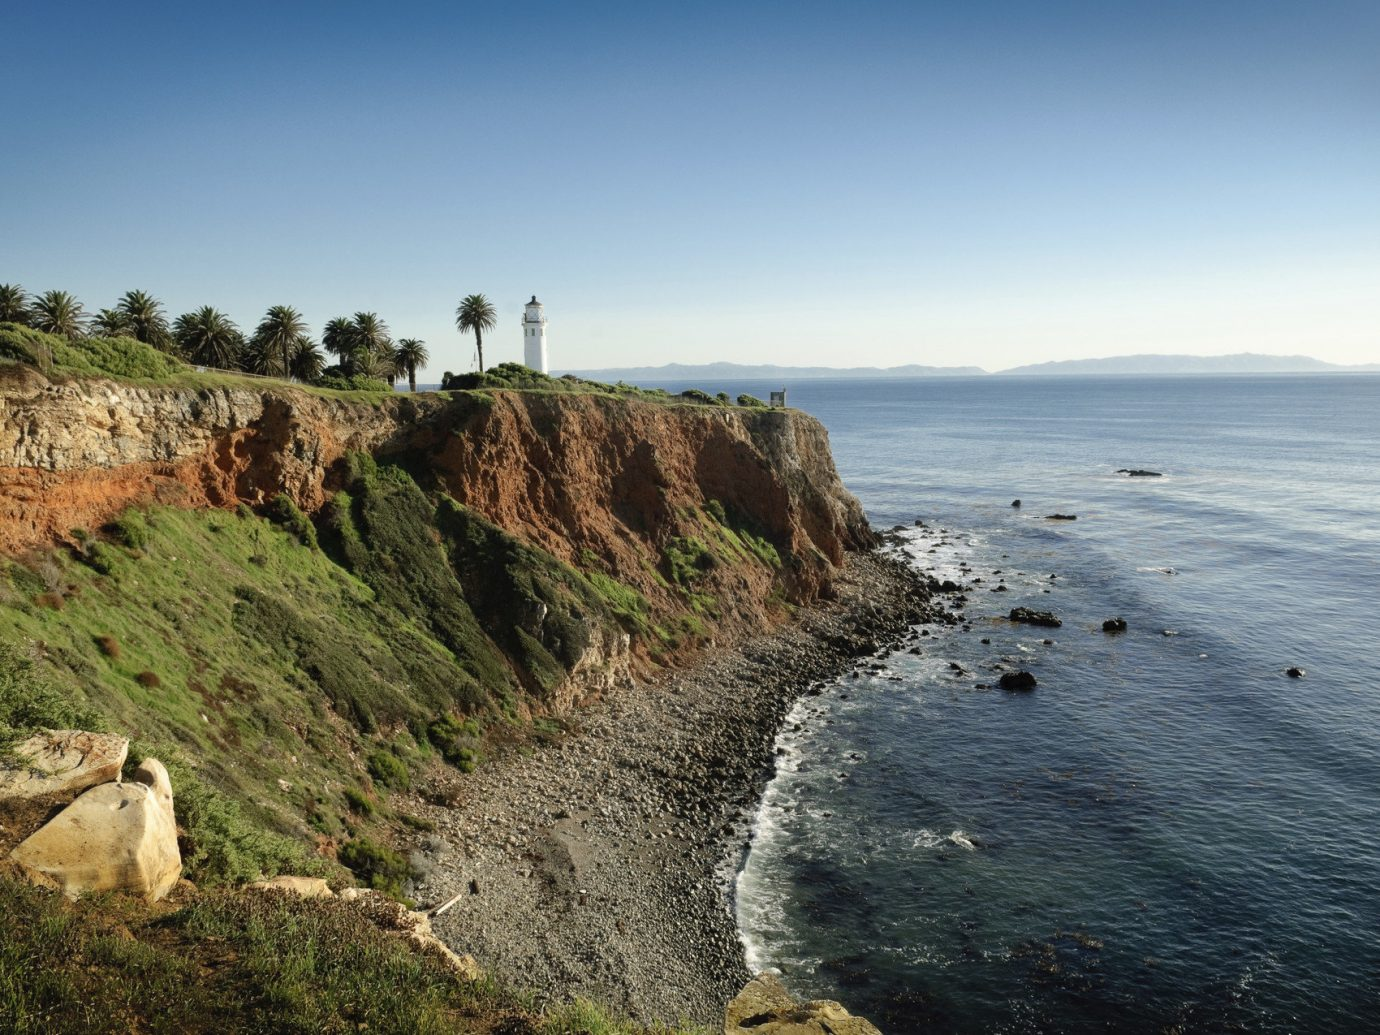 Trip Ideas sky outdoor Coast Nature cliff Sea landform geographical feature shore body of water water Ocean rock mountain terrain hill rocky landscape cape Beach bay geology wave tower hillside